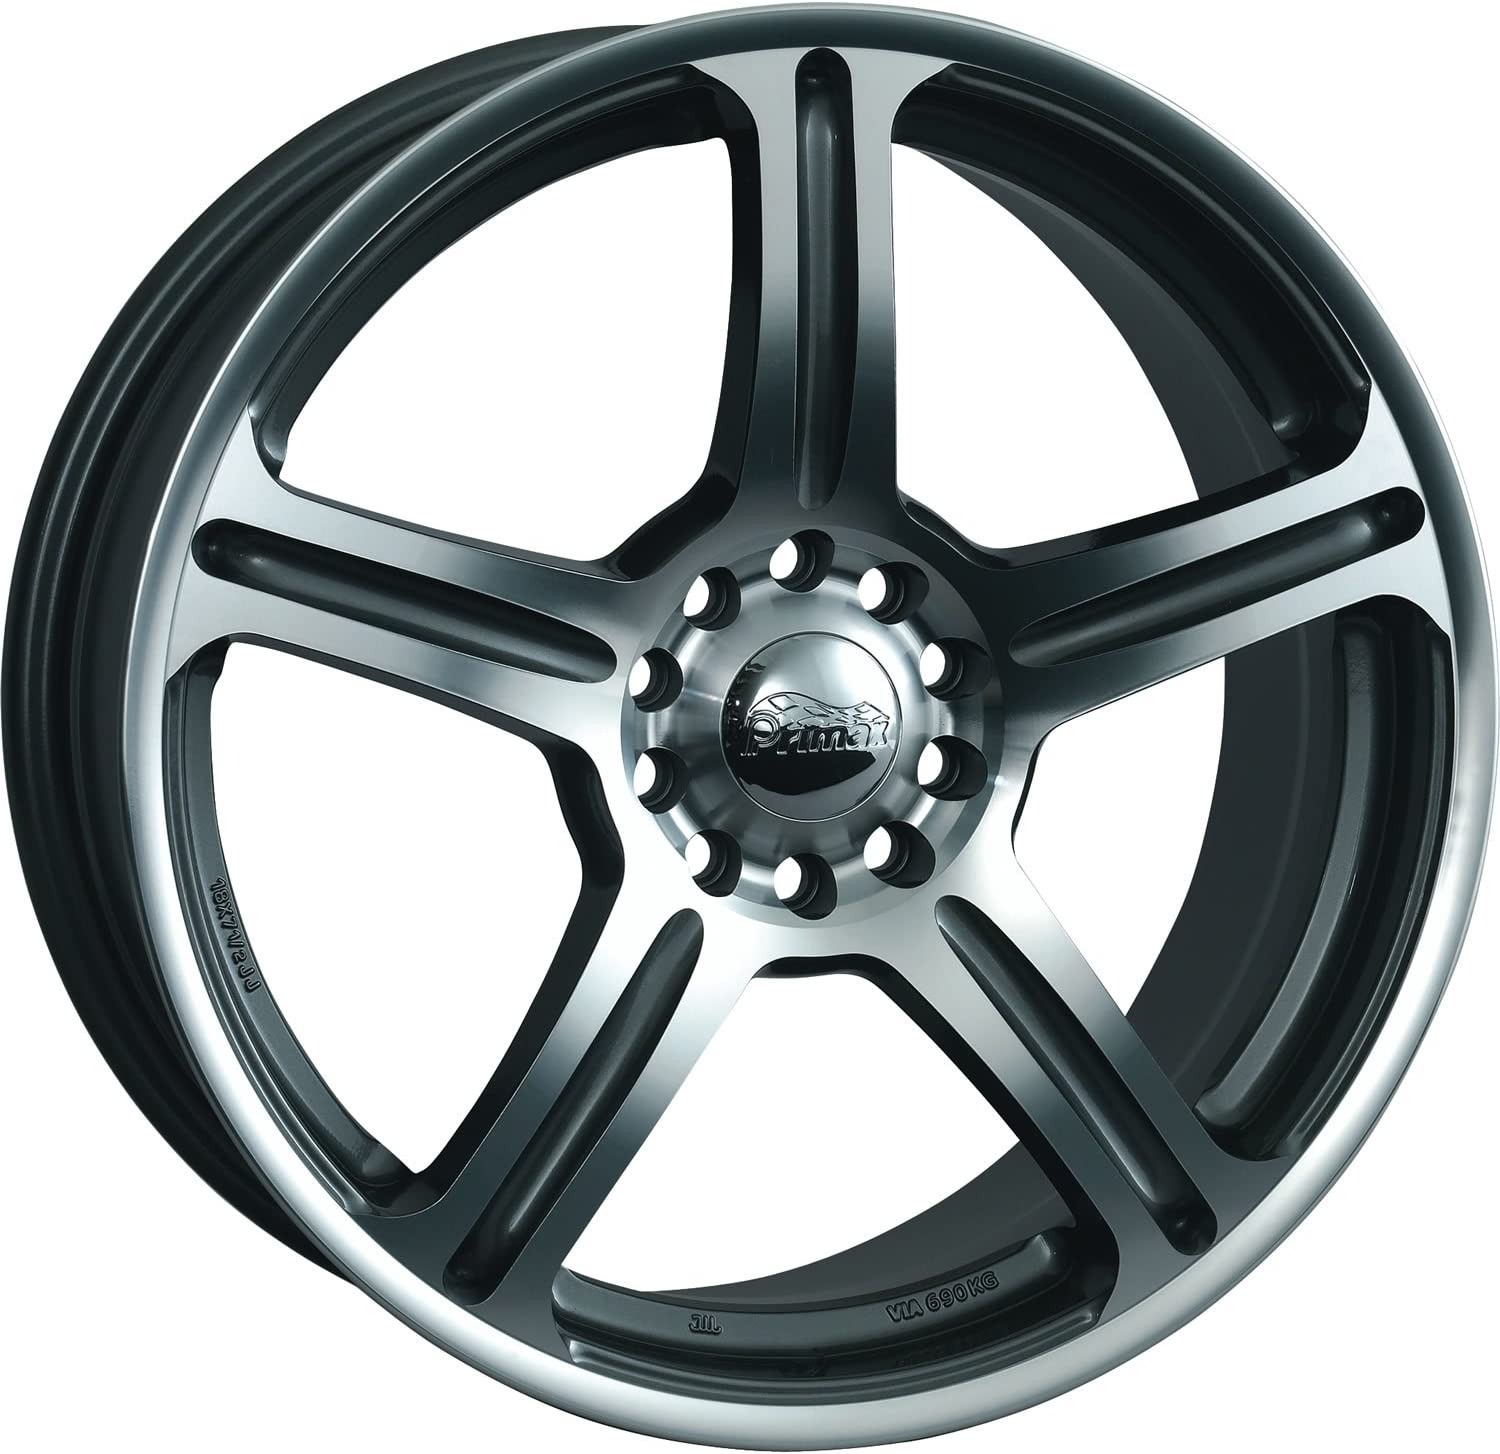 Primax 772 Wheel with Machined 16 x 7. inches //5 x 112 mm, 38 mm Offset